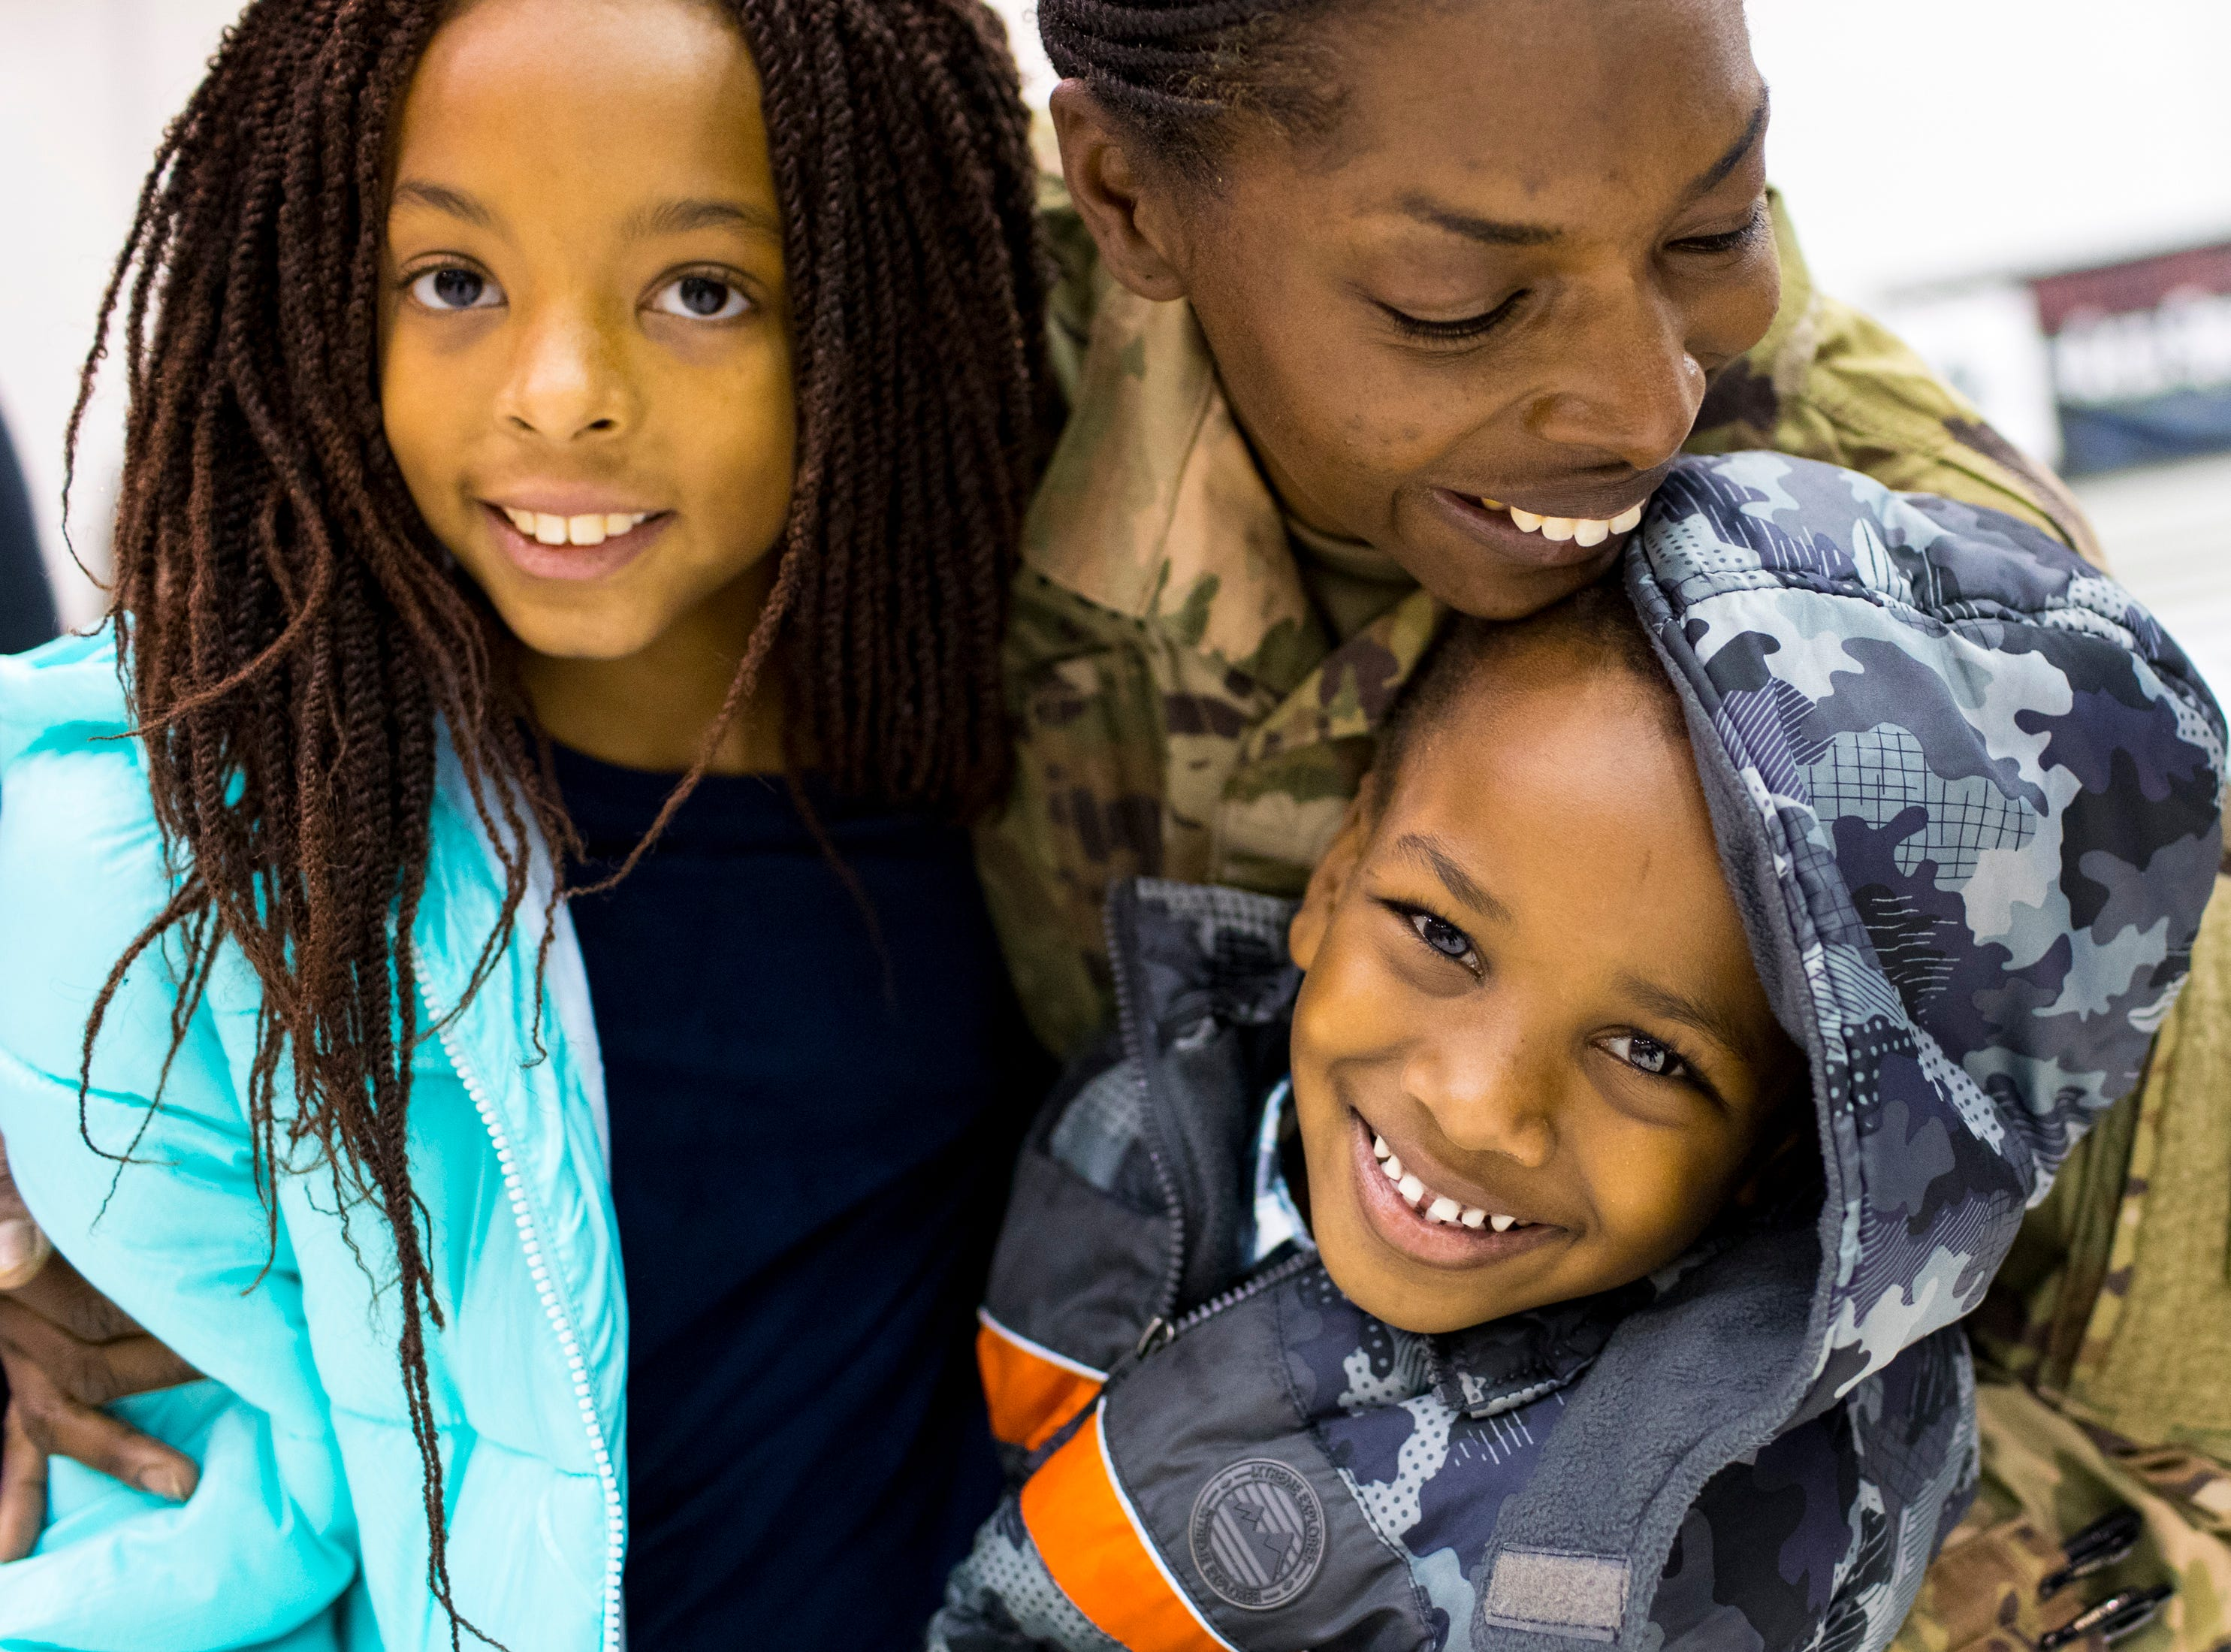 Staff Sgt. Felicia Witcher holds her children Mariana Hernandez, 8, and Justin Ewing, 5, during the welcome home ceremony for the 2nd Battalion, 44th Air Defense Artillery Regiment and 101st Airborne Division at Fort Campbell in the early hours of Monday, Nov. 19, 2018. The soldiers were returning from a 9-month deployment in Afghanistan.